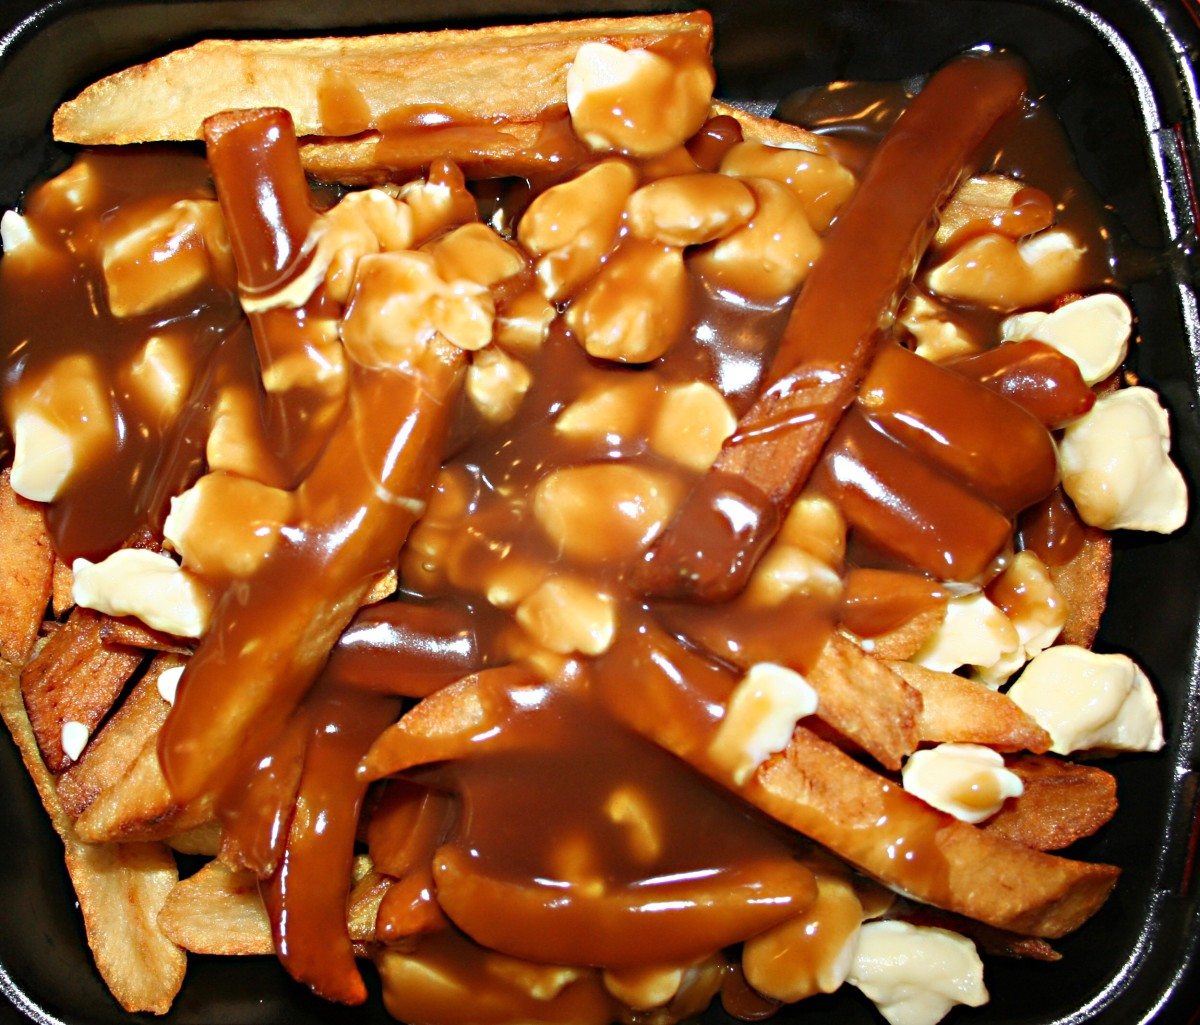 Poutine - a delicious mess made from French fries, cheese curds and gravy